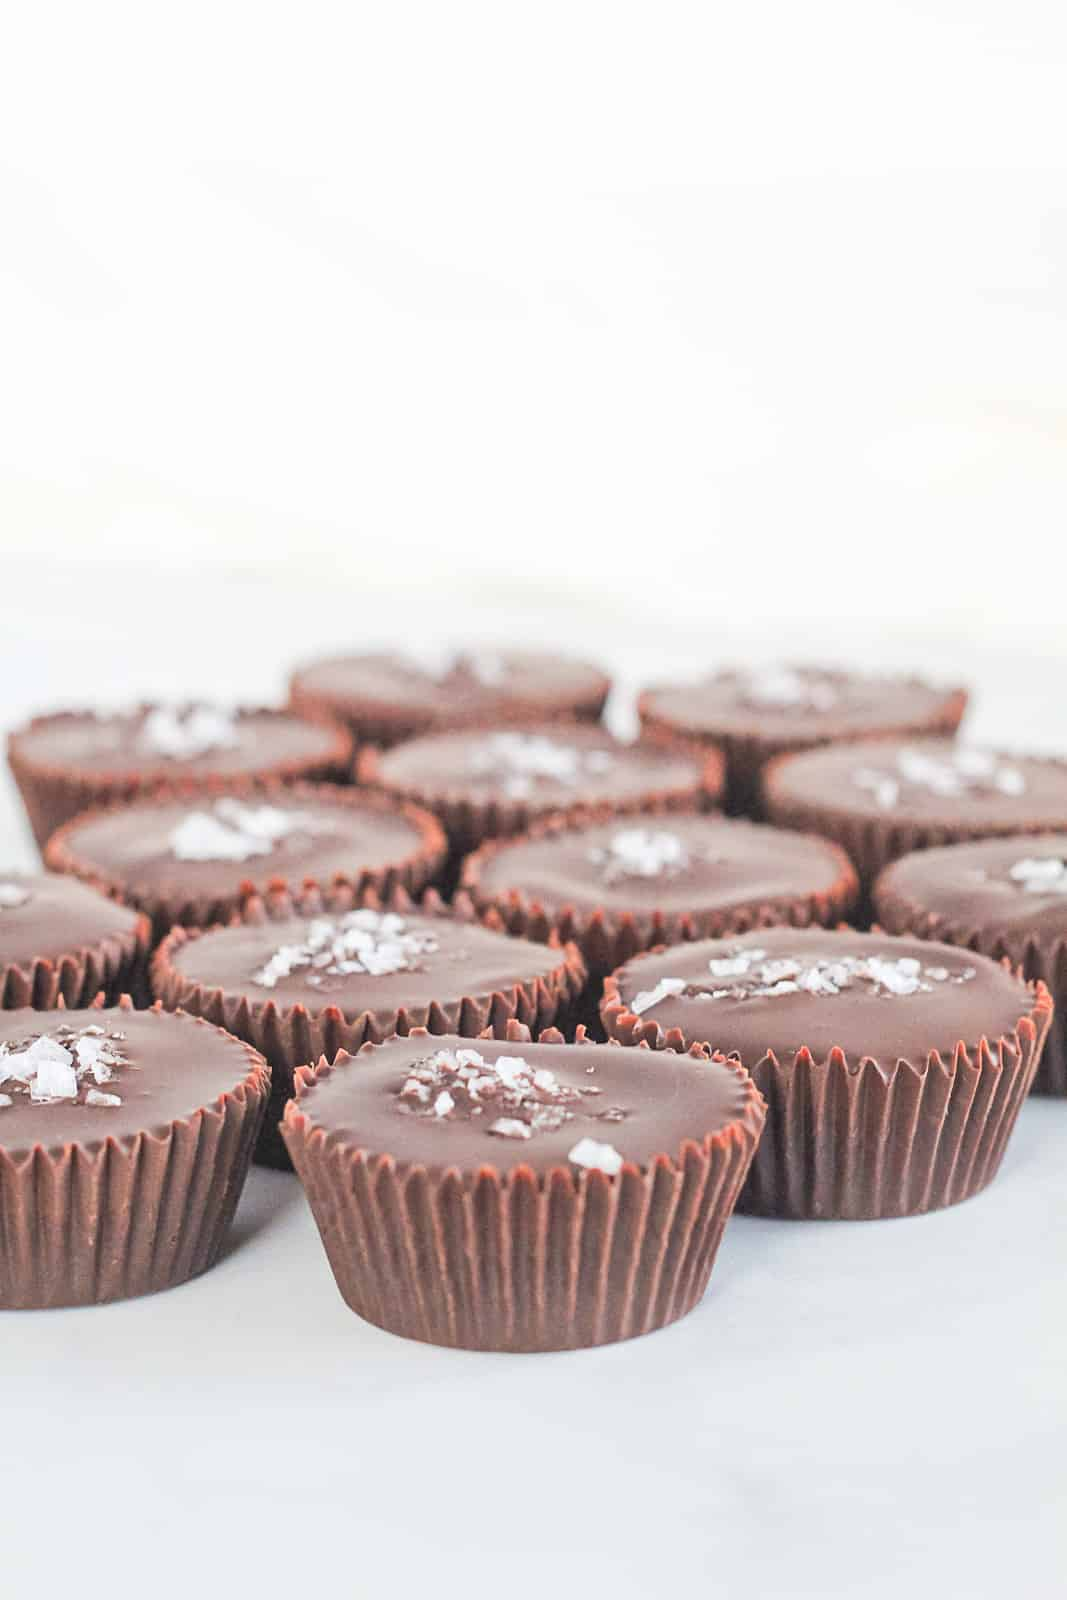 Side view of homemade almond butter cups.